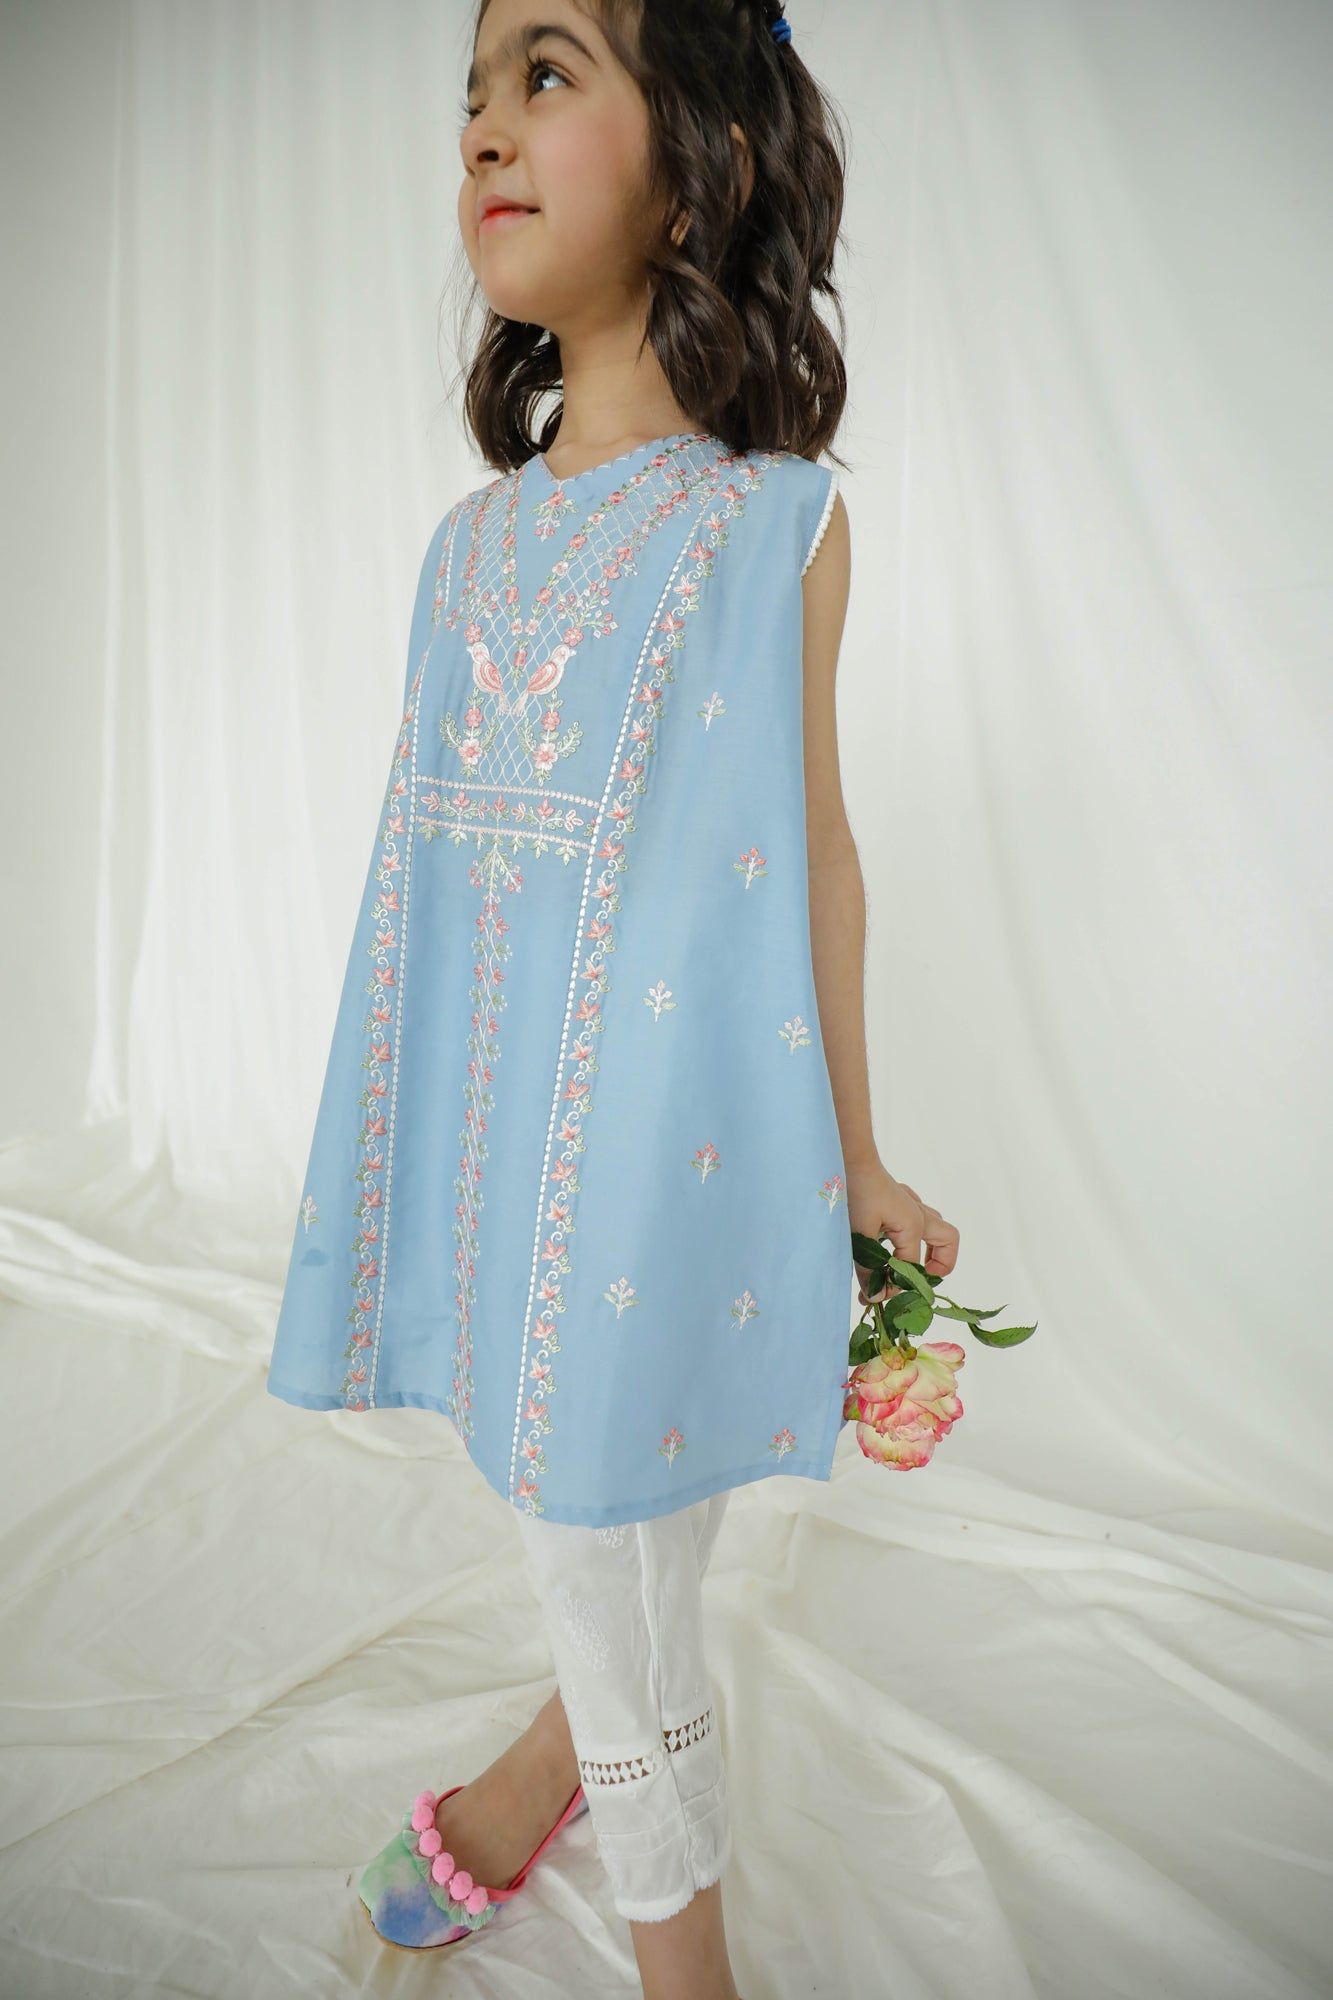 EMBROIDERED SHIRT (GTC203212) - Ethnic by Outfitters